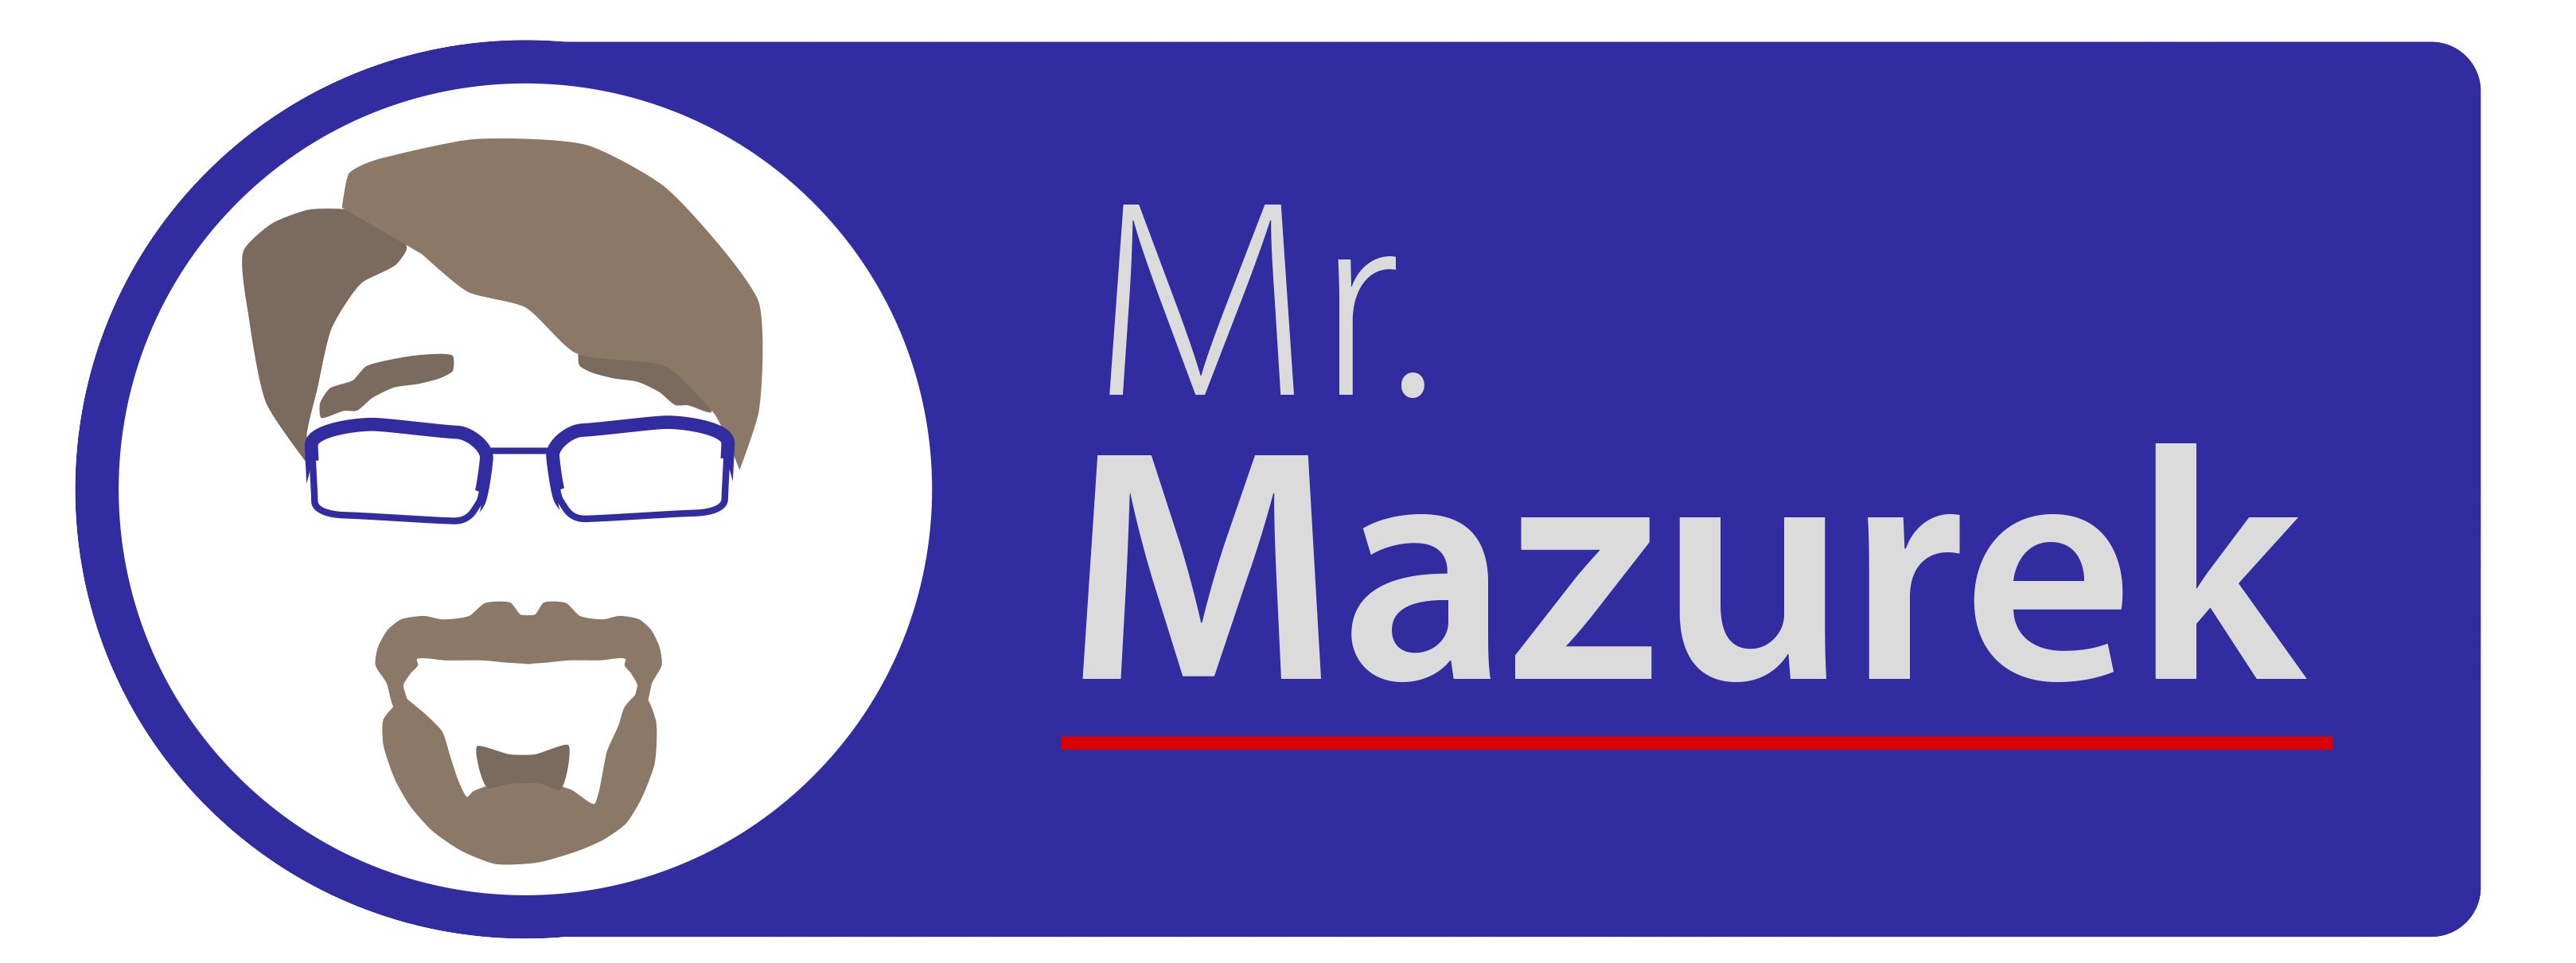 Mr. Mazurek